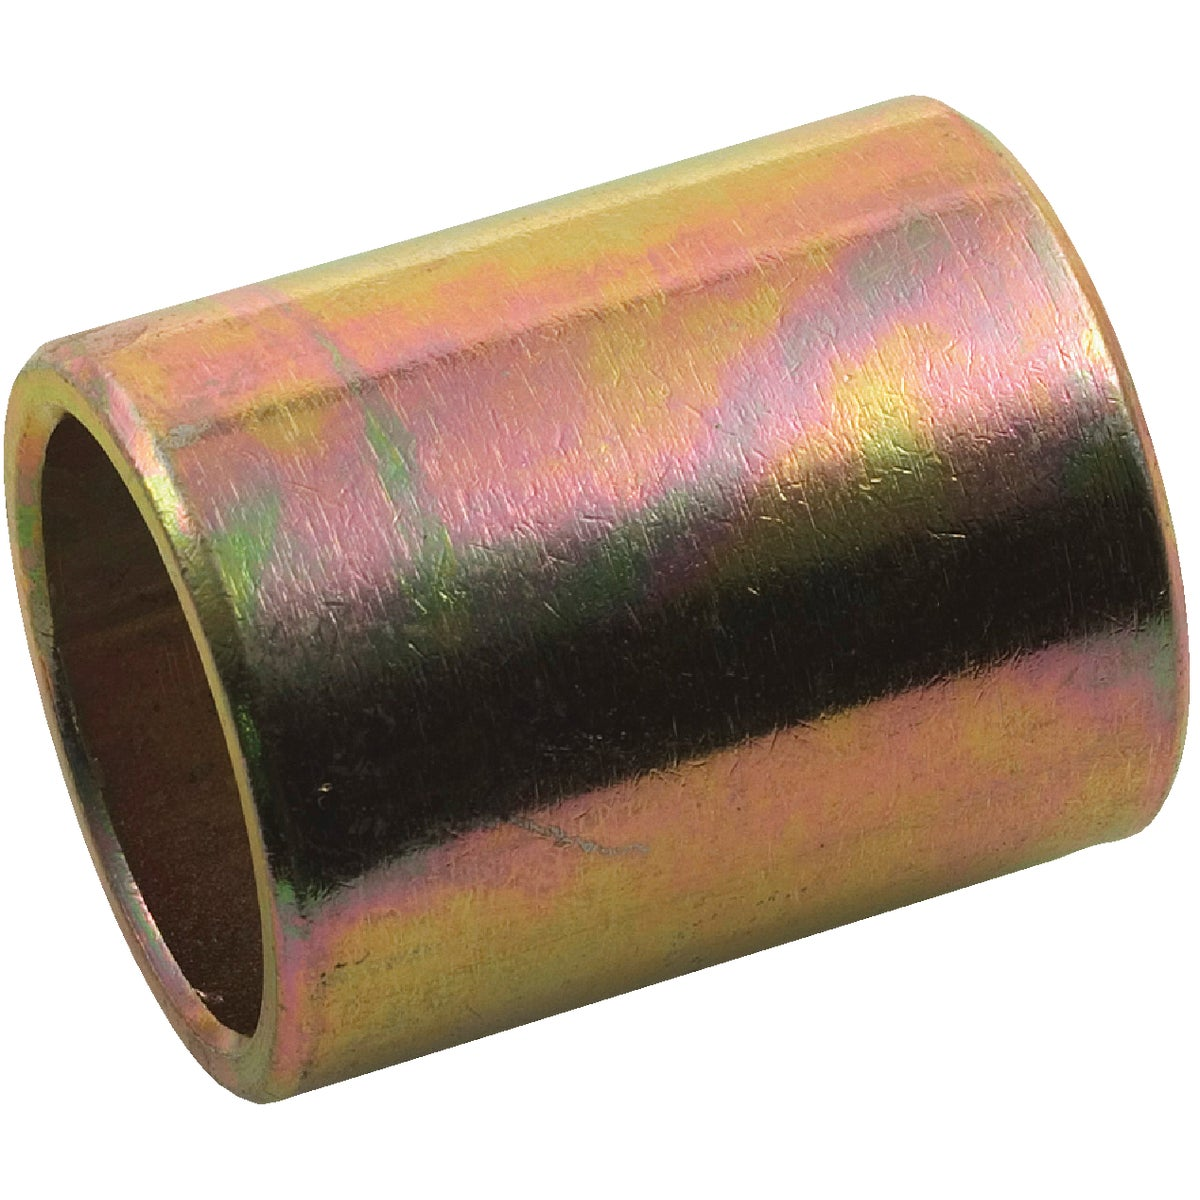 LIFT ARM REDUCER BUSHING - S08030200-B832 by Speeco Farmex